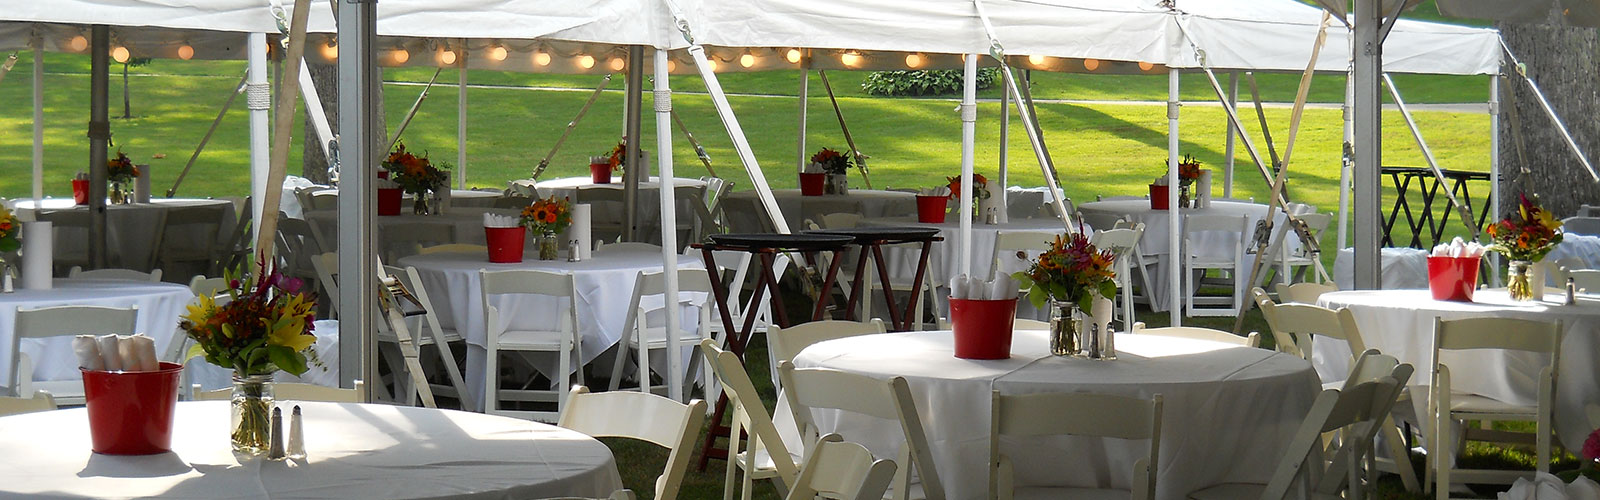 Event rentals in Southwest Michigan